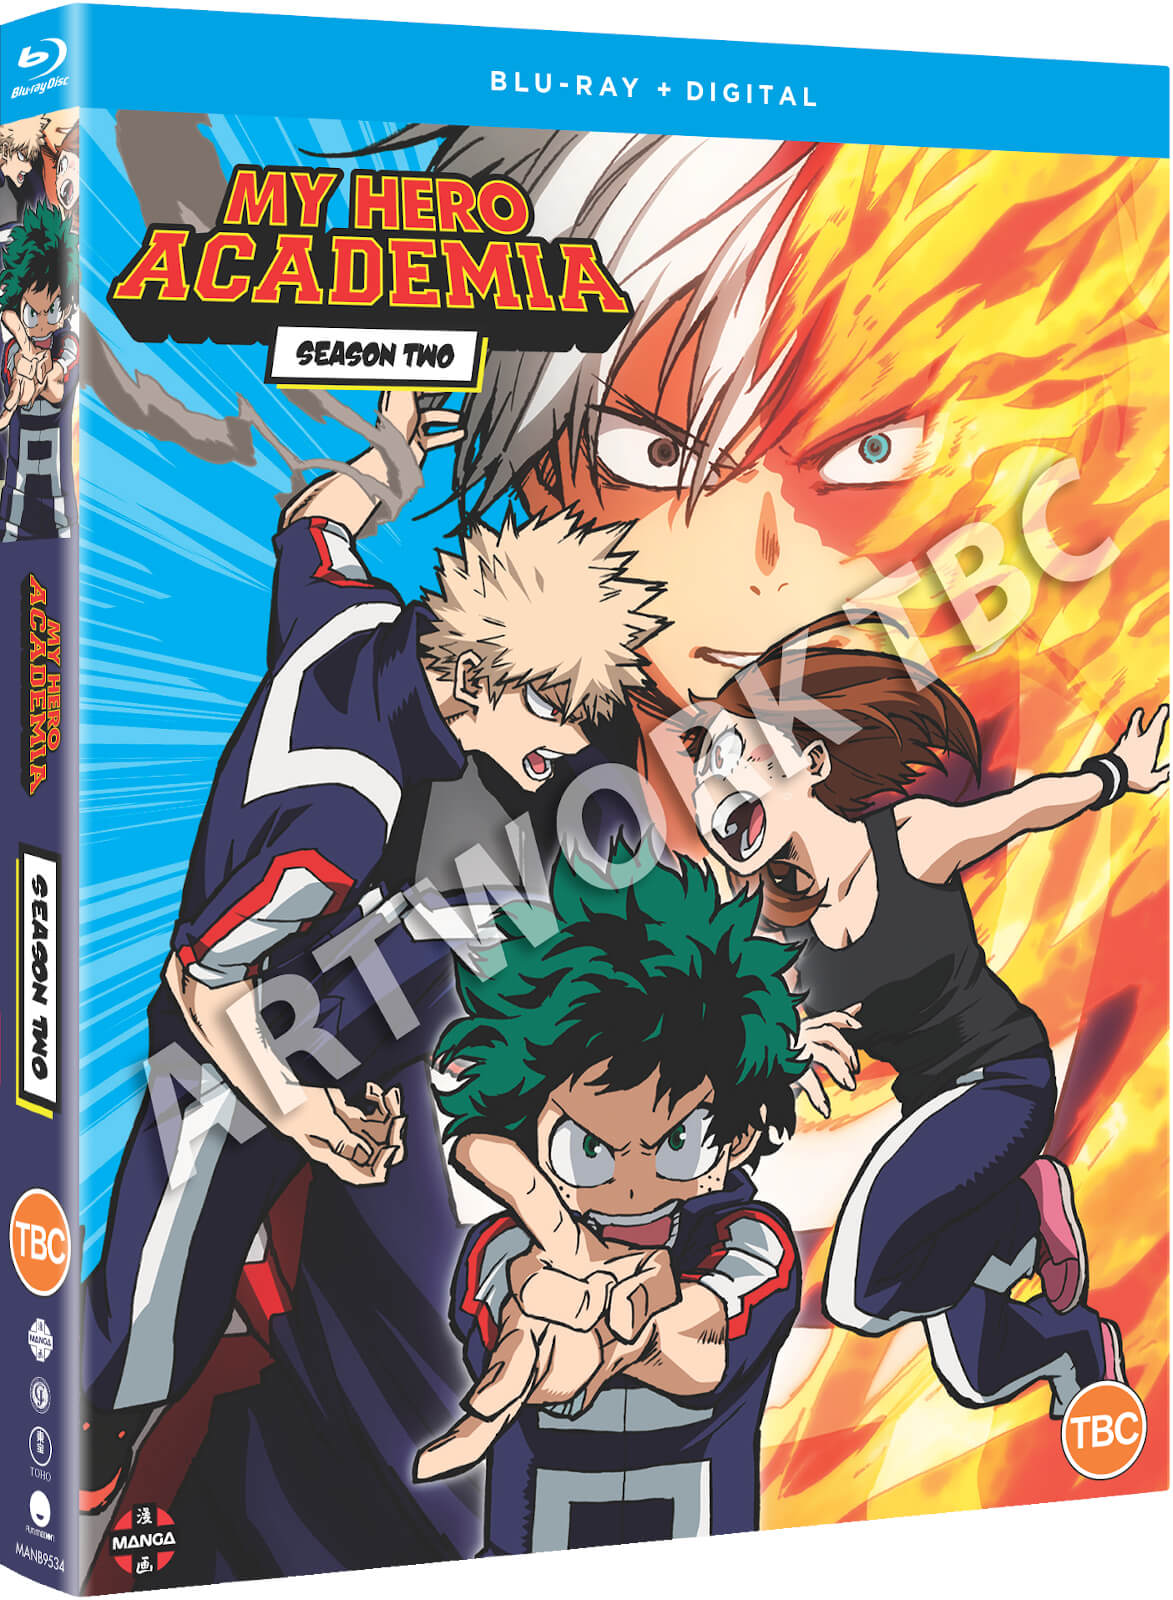 Manga Entertainment Schedules More My Hero Academia With Heroes Rising Season 4 More Anime Uk News